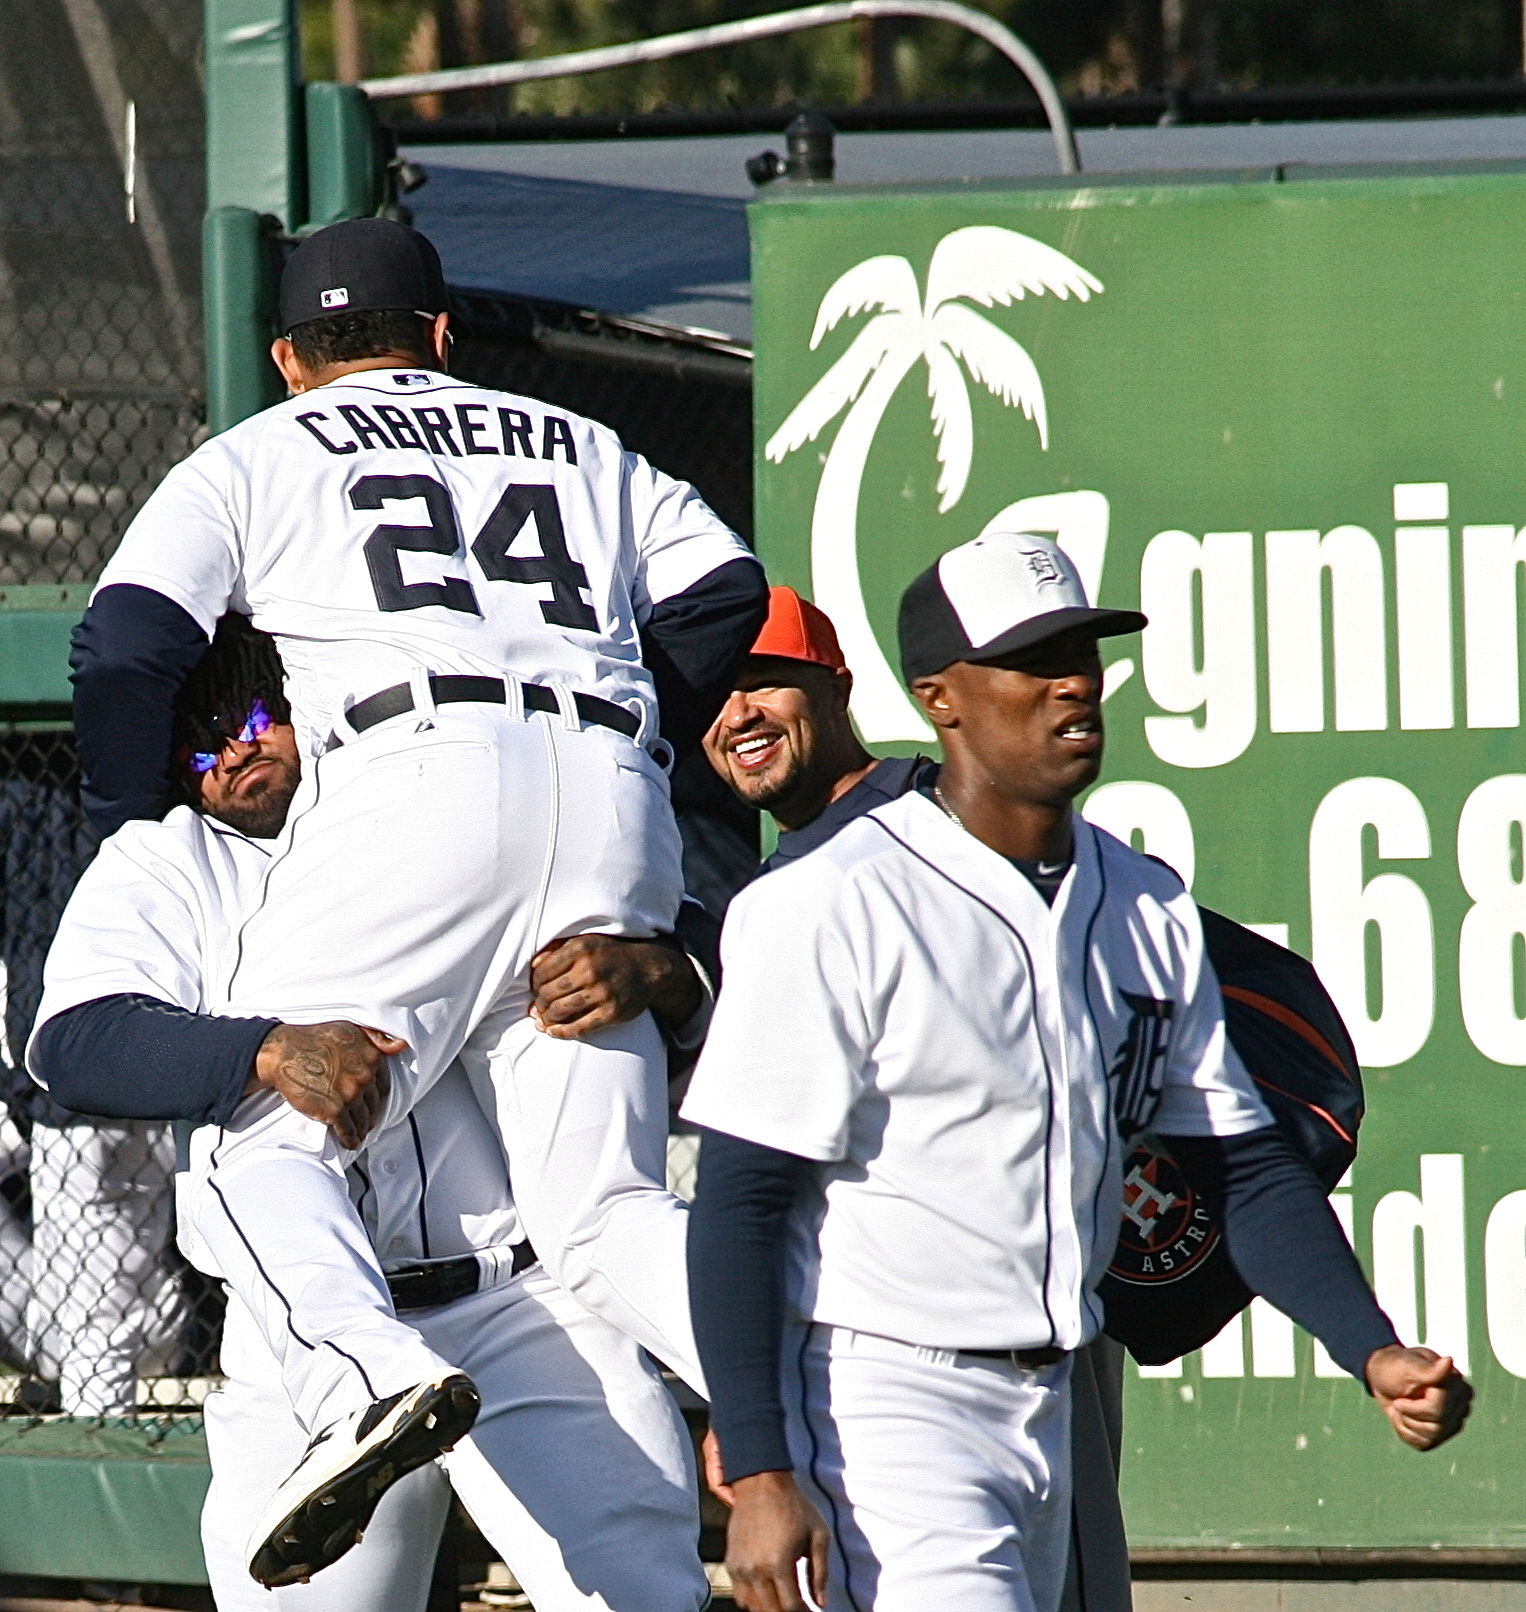 Prince Fielder picking up Miguel Cabrera